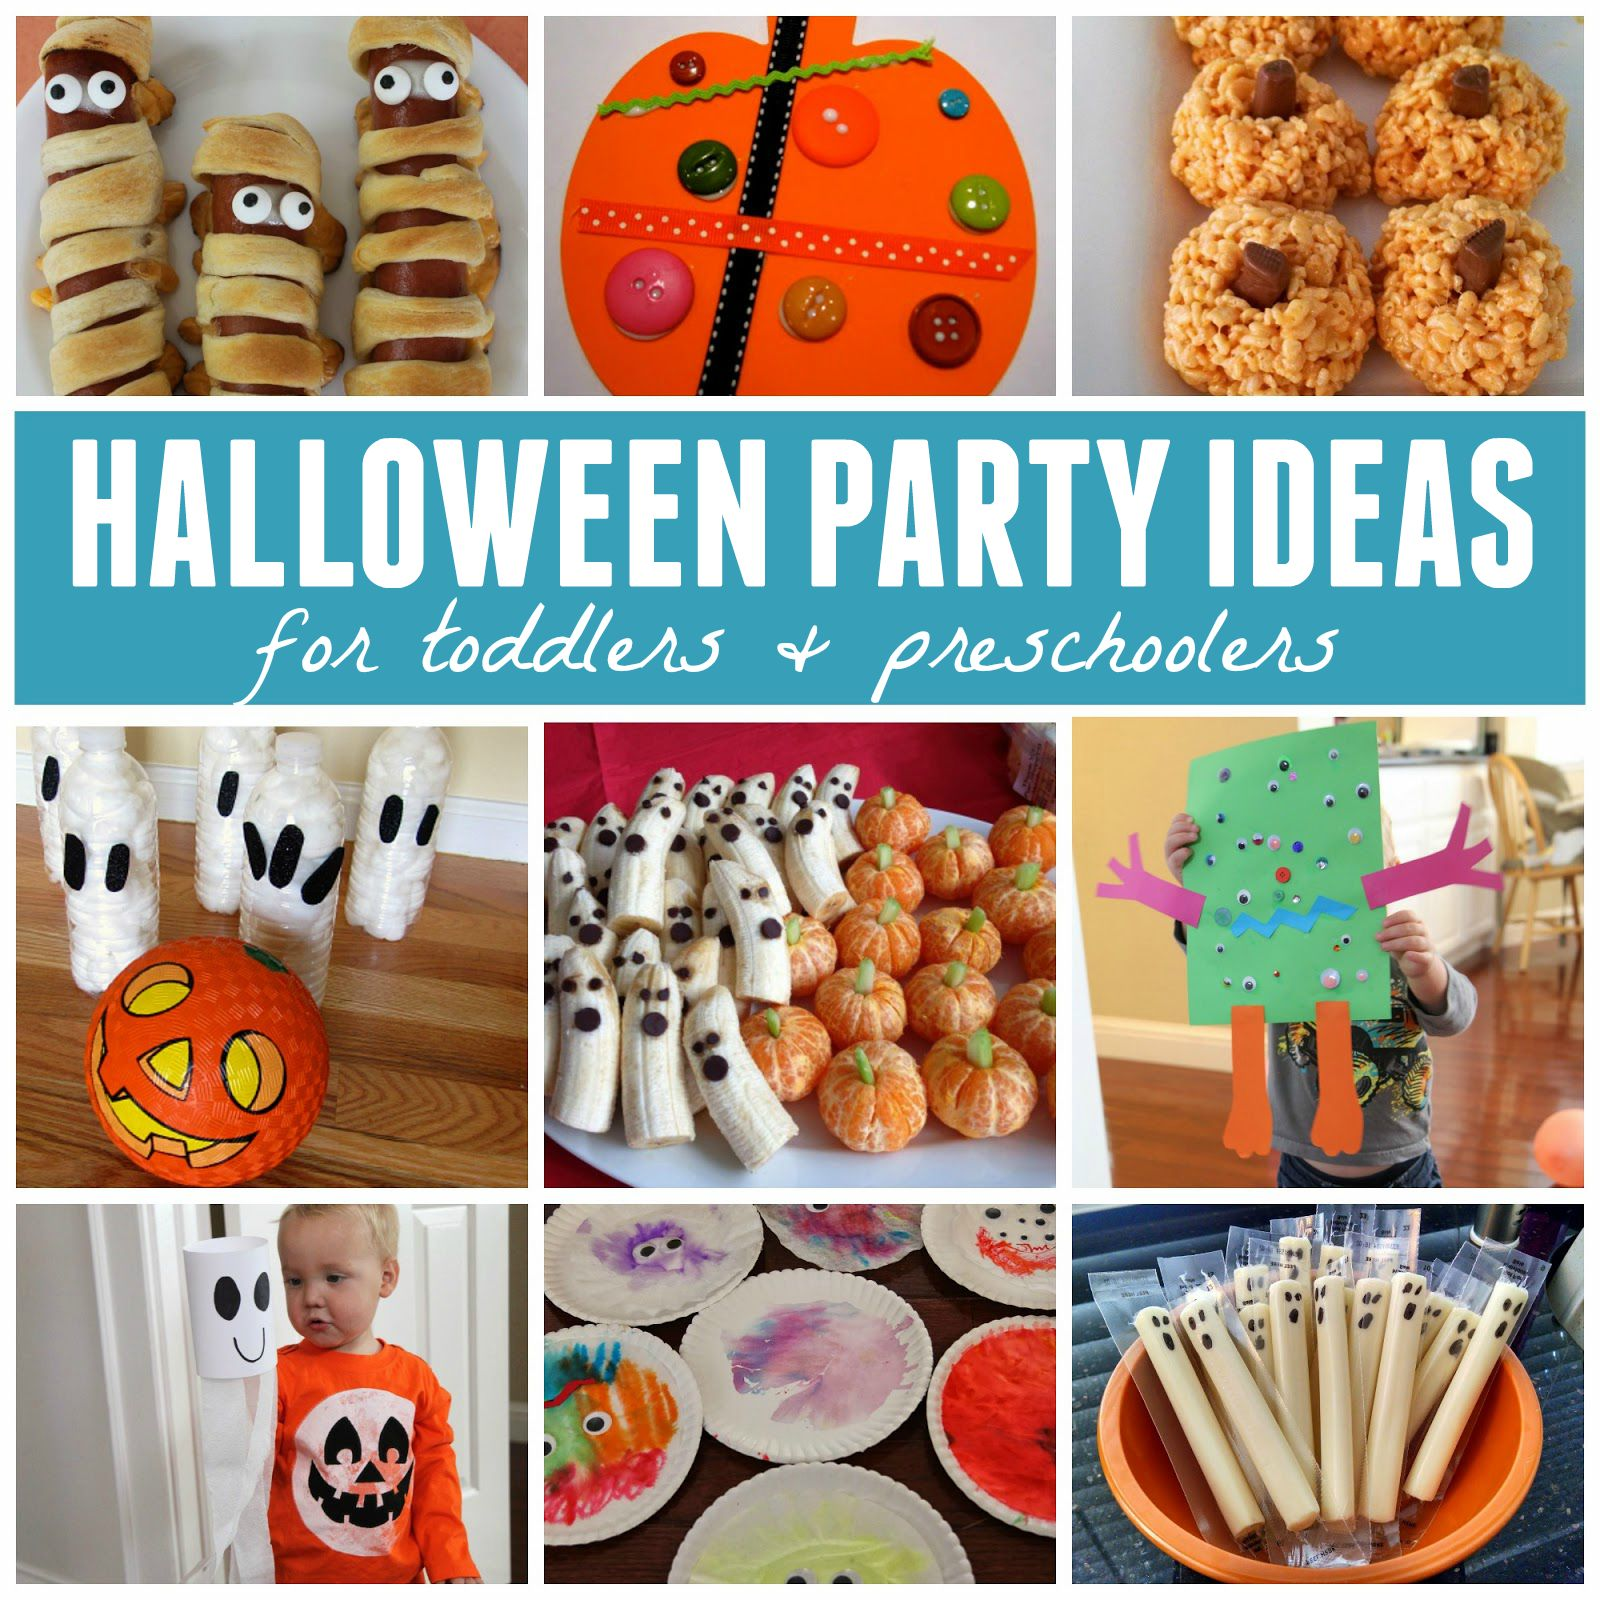 ideas for halloween games 25 best halloween games ideas on pinterest class halloween best - Halloween Party Games Toddlers